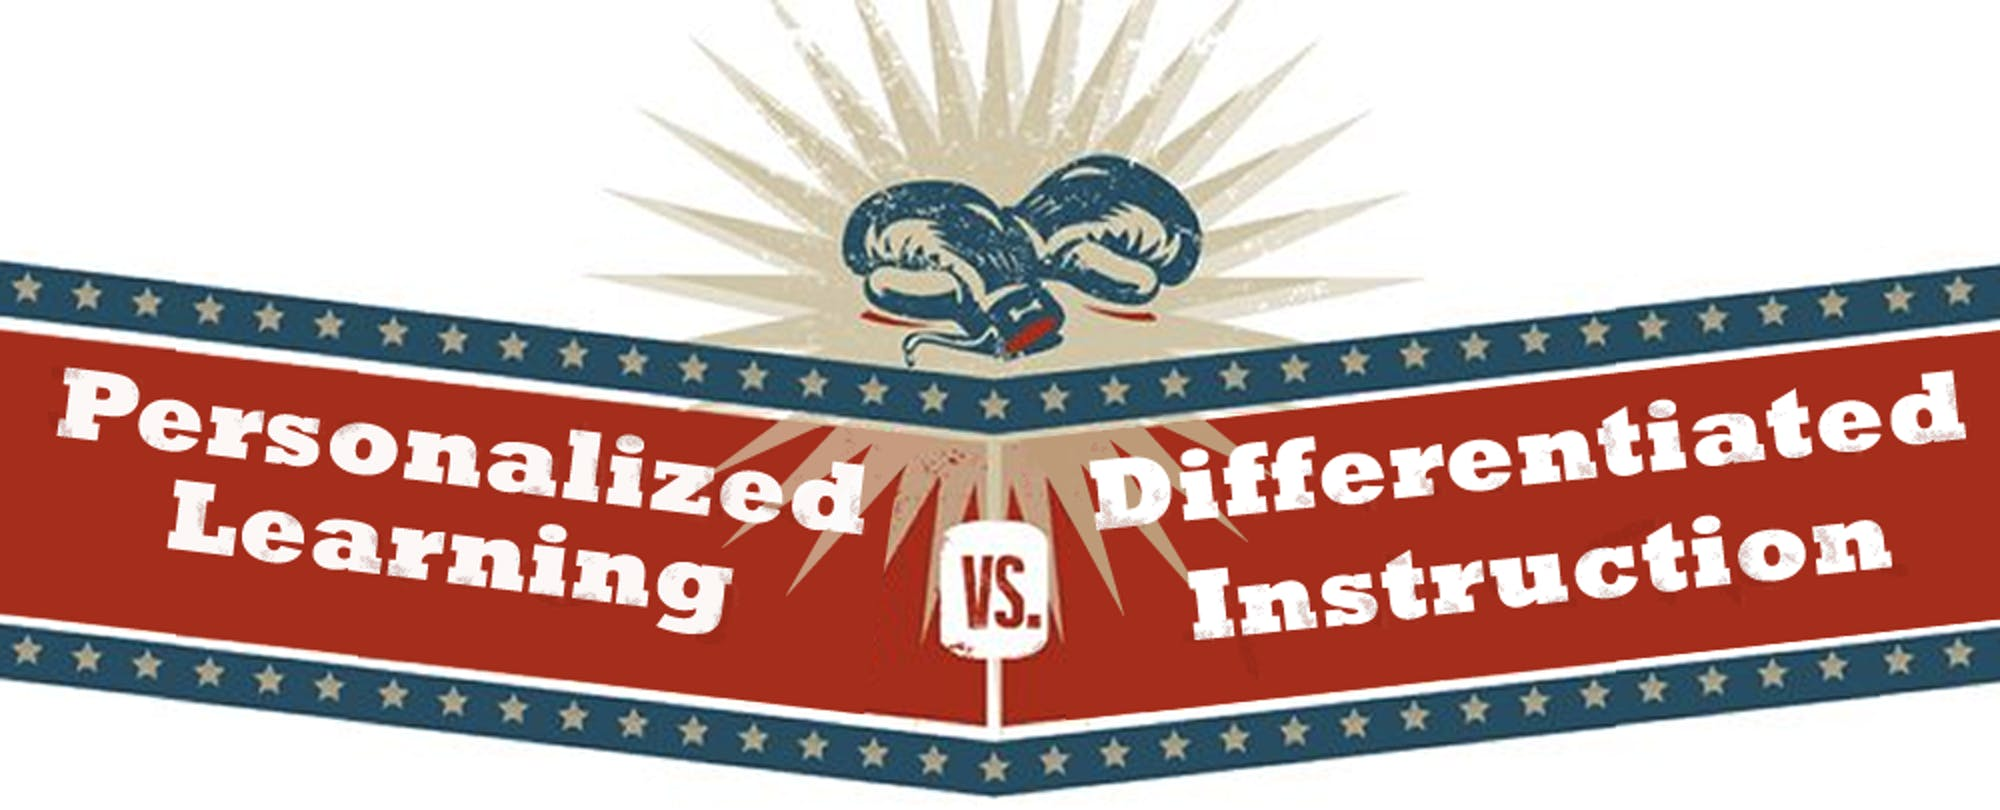 Five Minute Refresh: Comparing Personalized, Individualized, and Differentiated